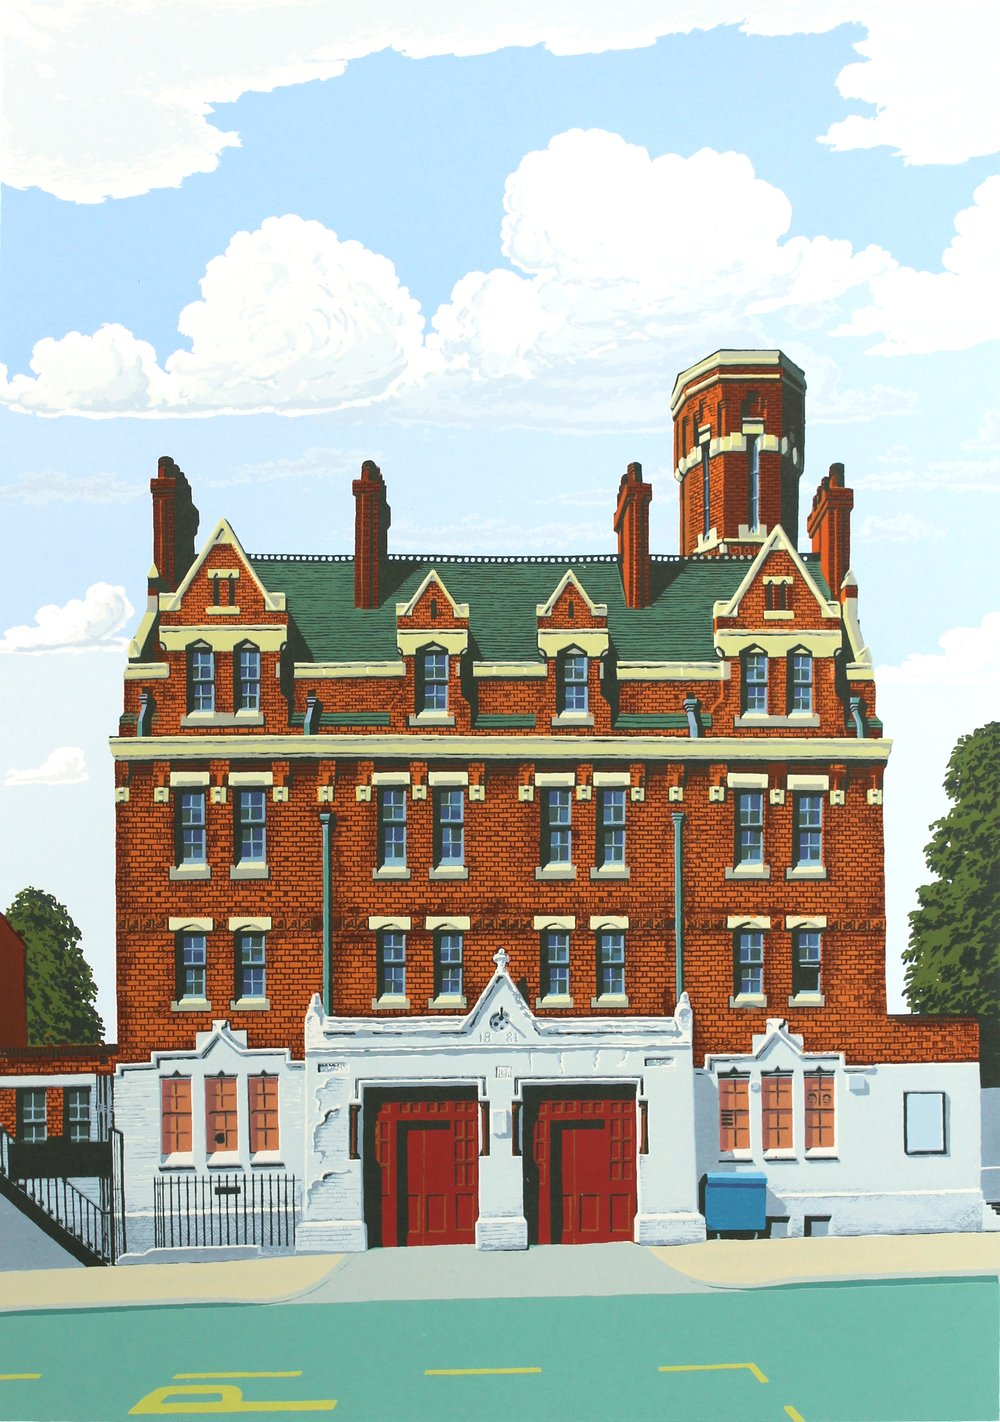 The Old Fire Station, West Norwood